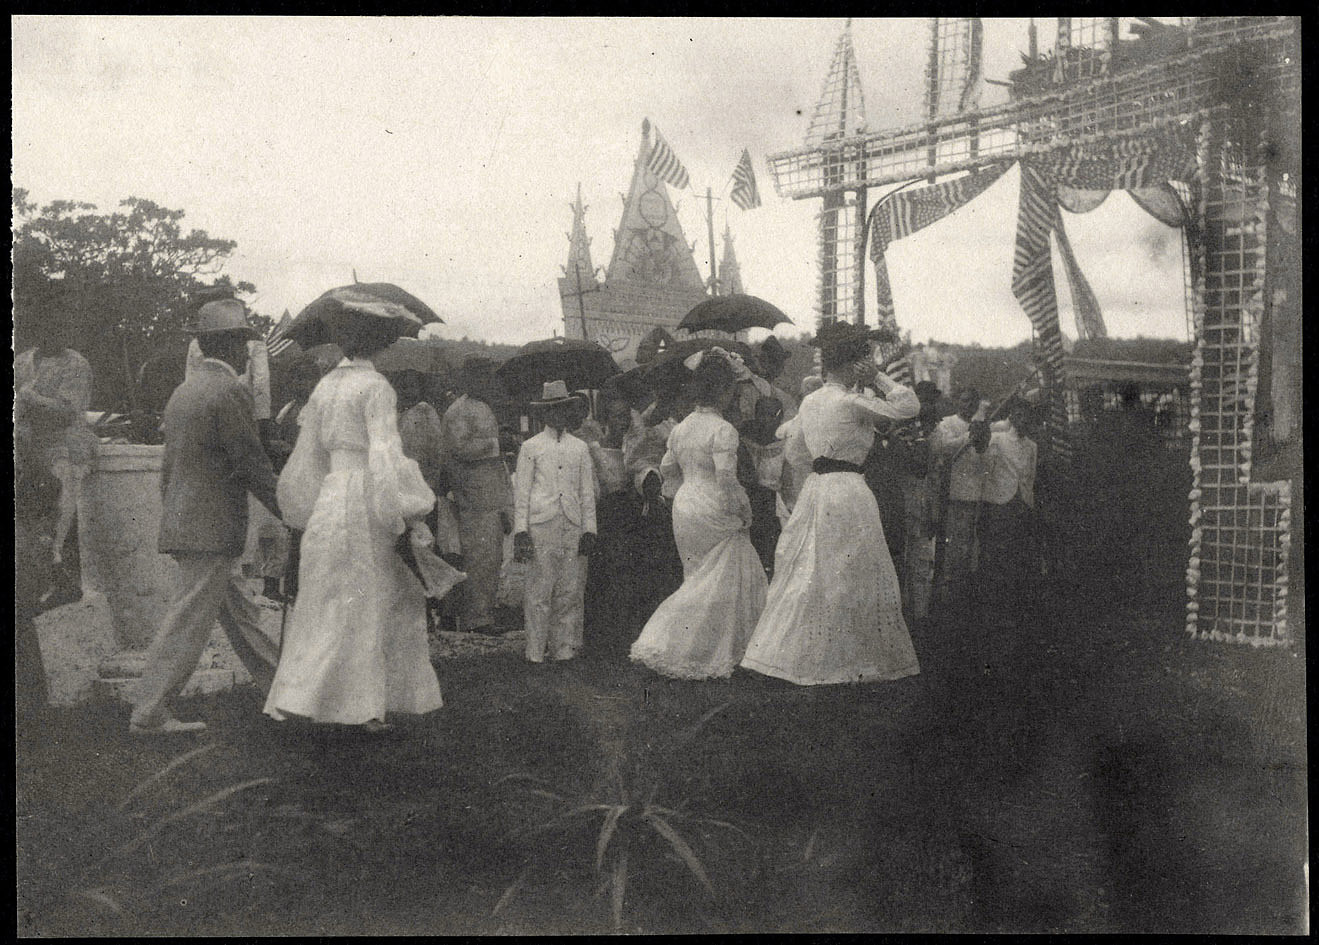 Legazpi: Alice Roosevelt and Nicholas Longworth arrive at festive parade